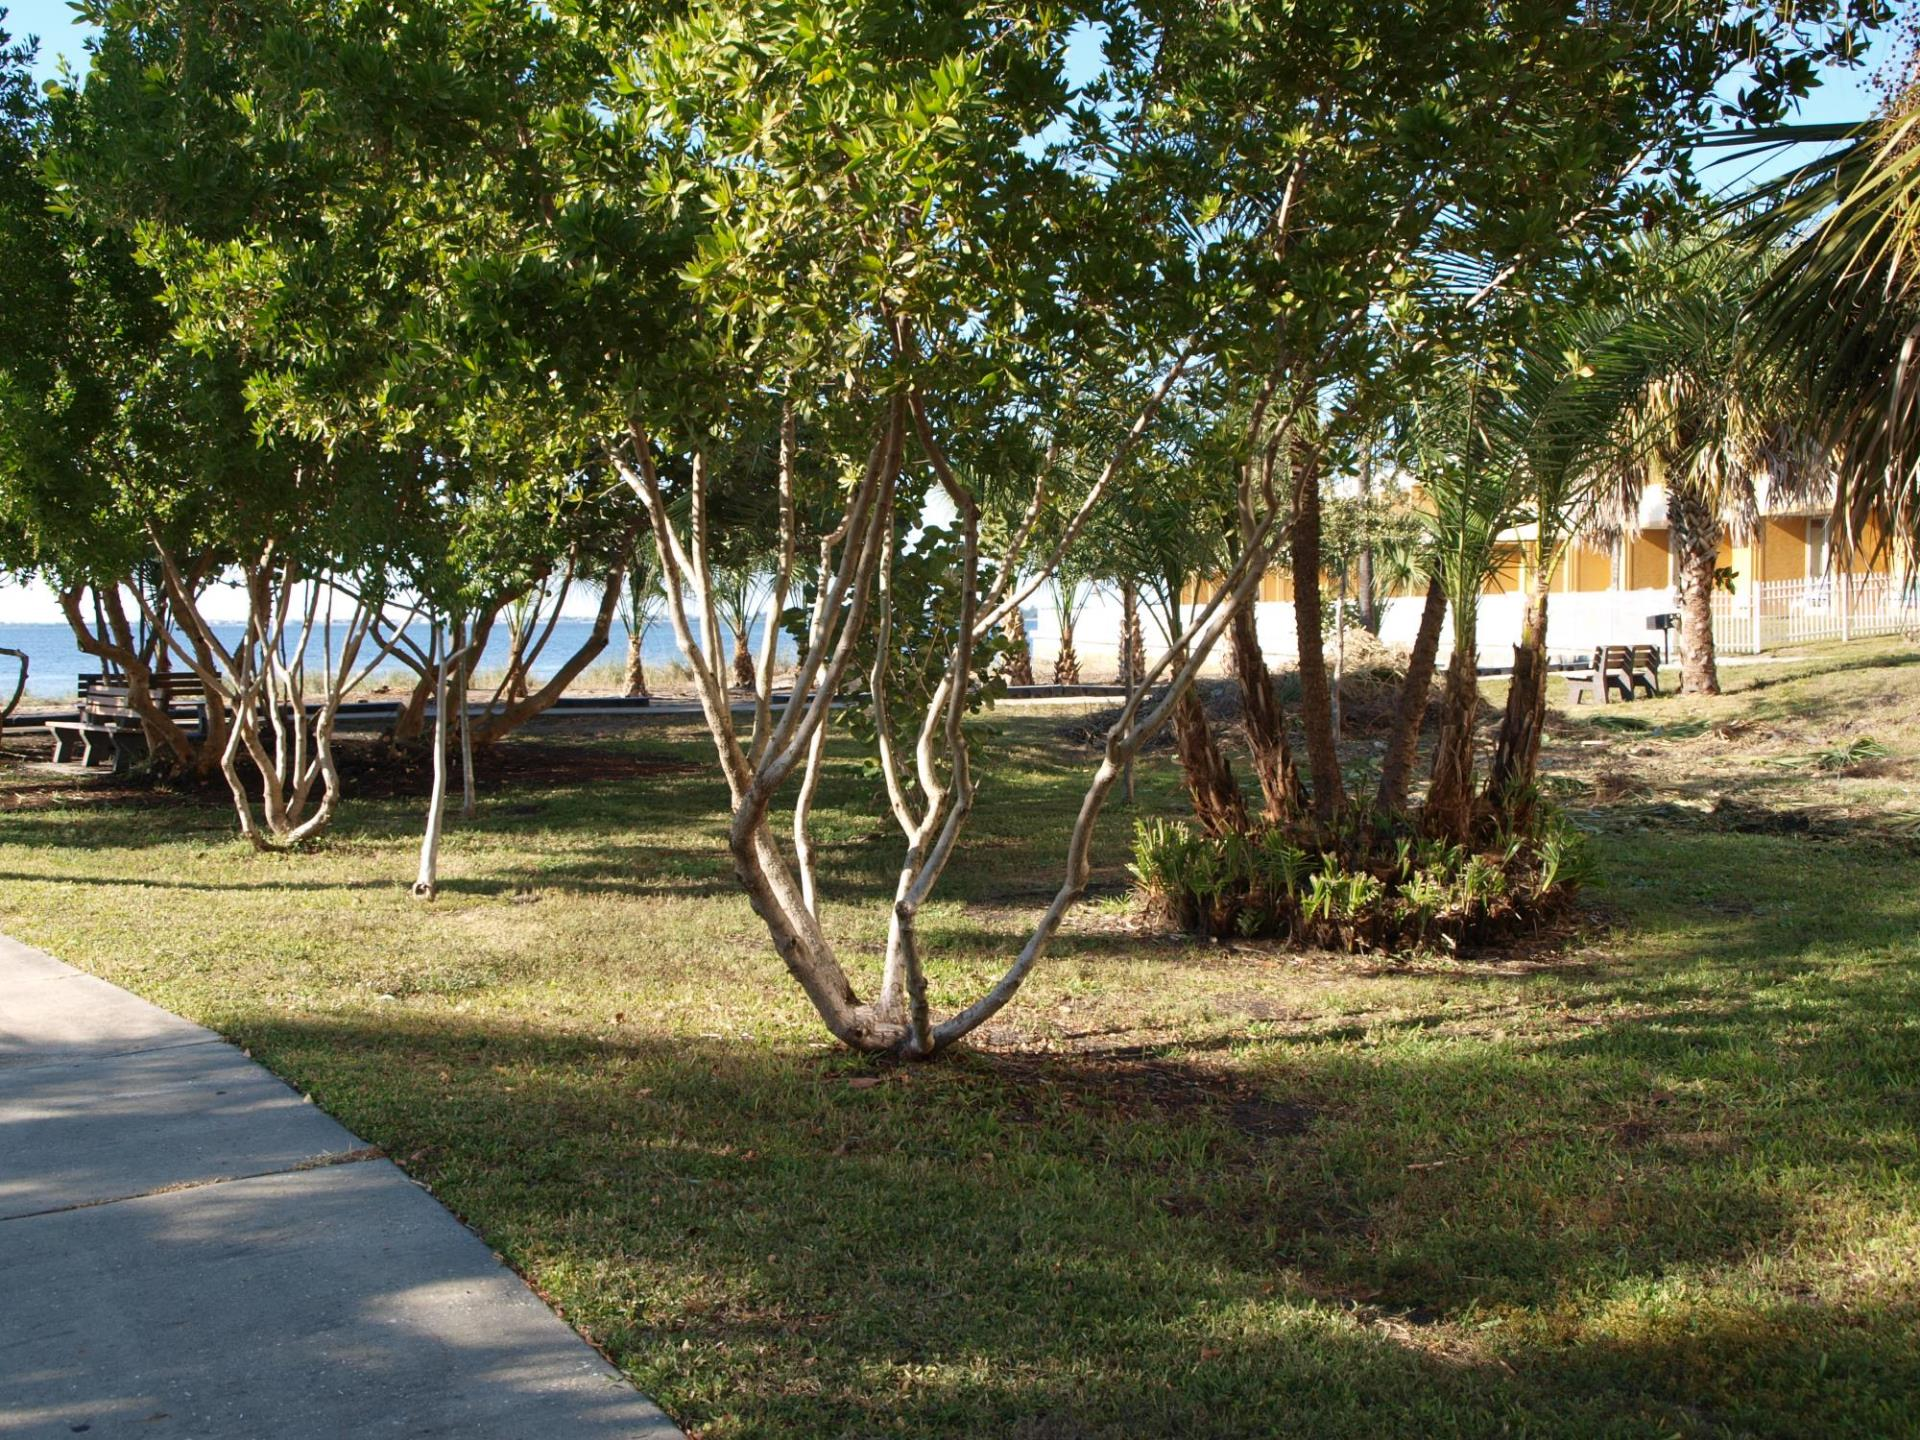 along the harbor trees